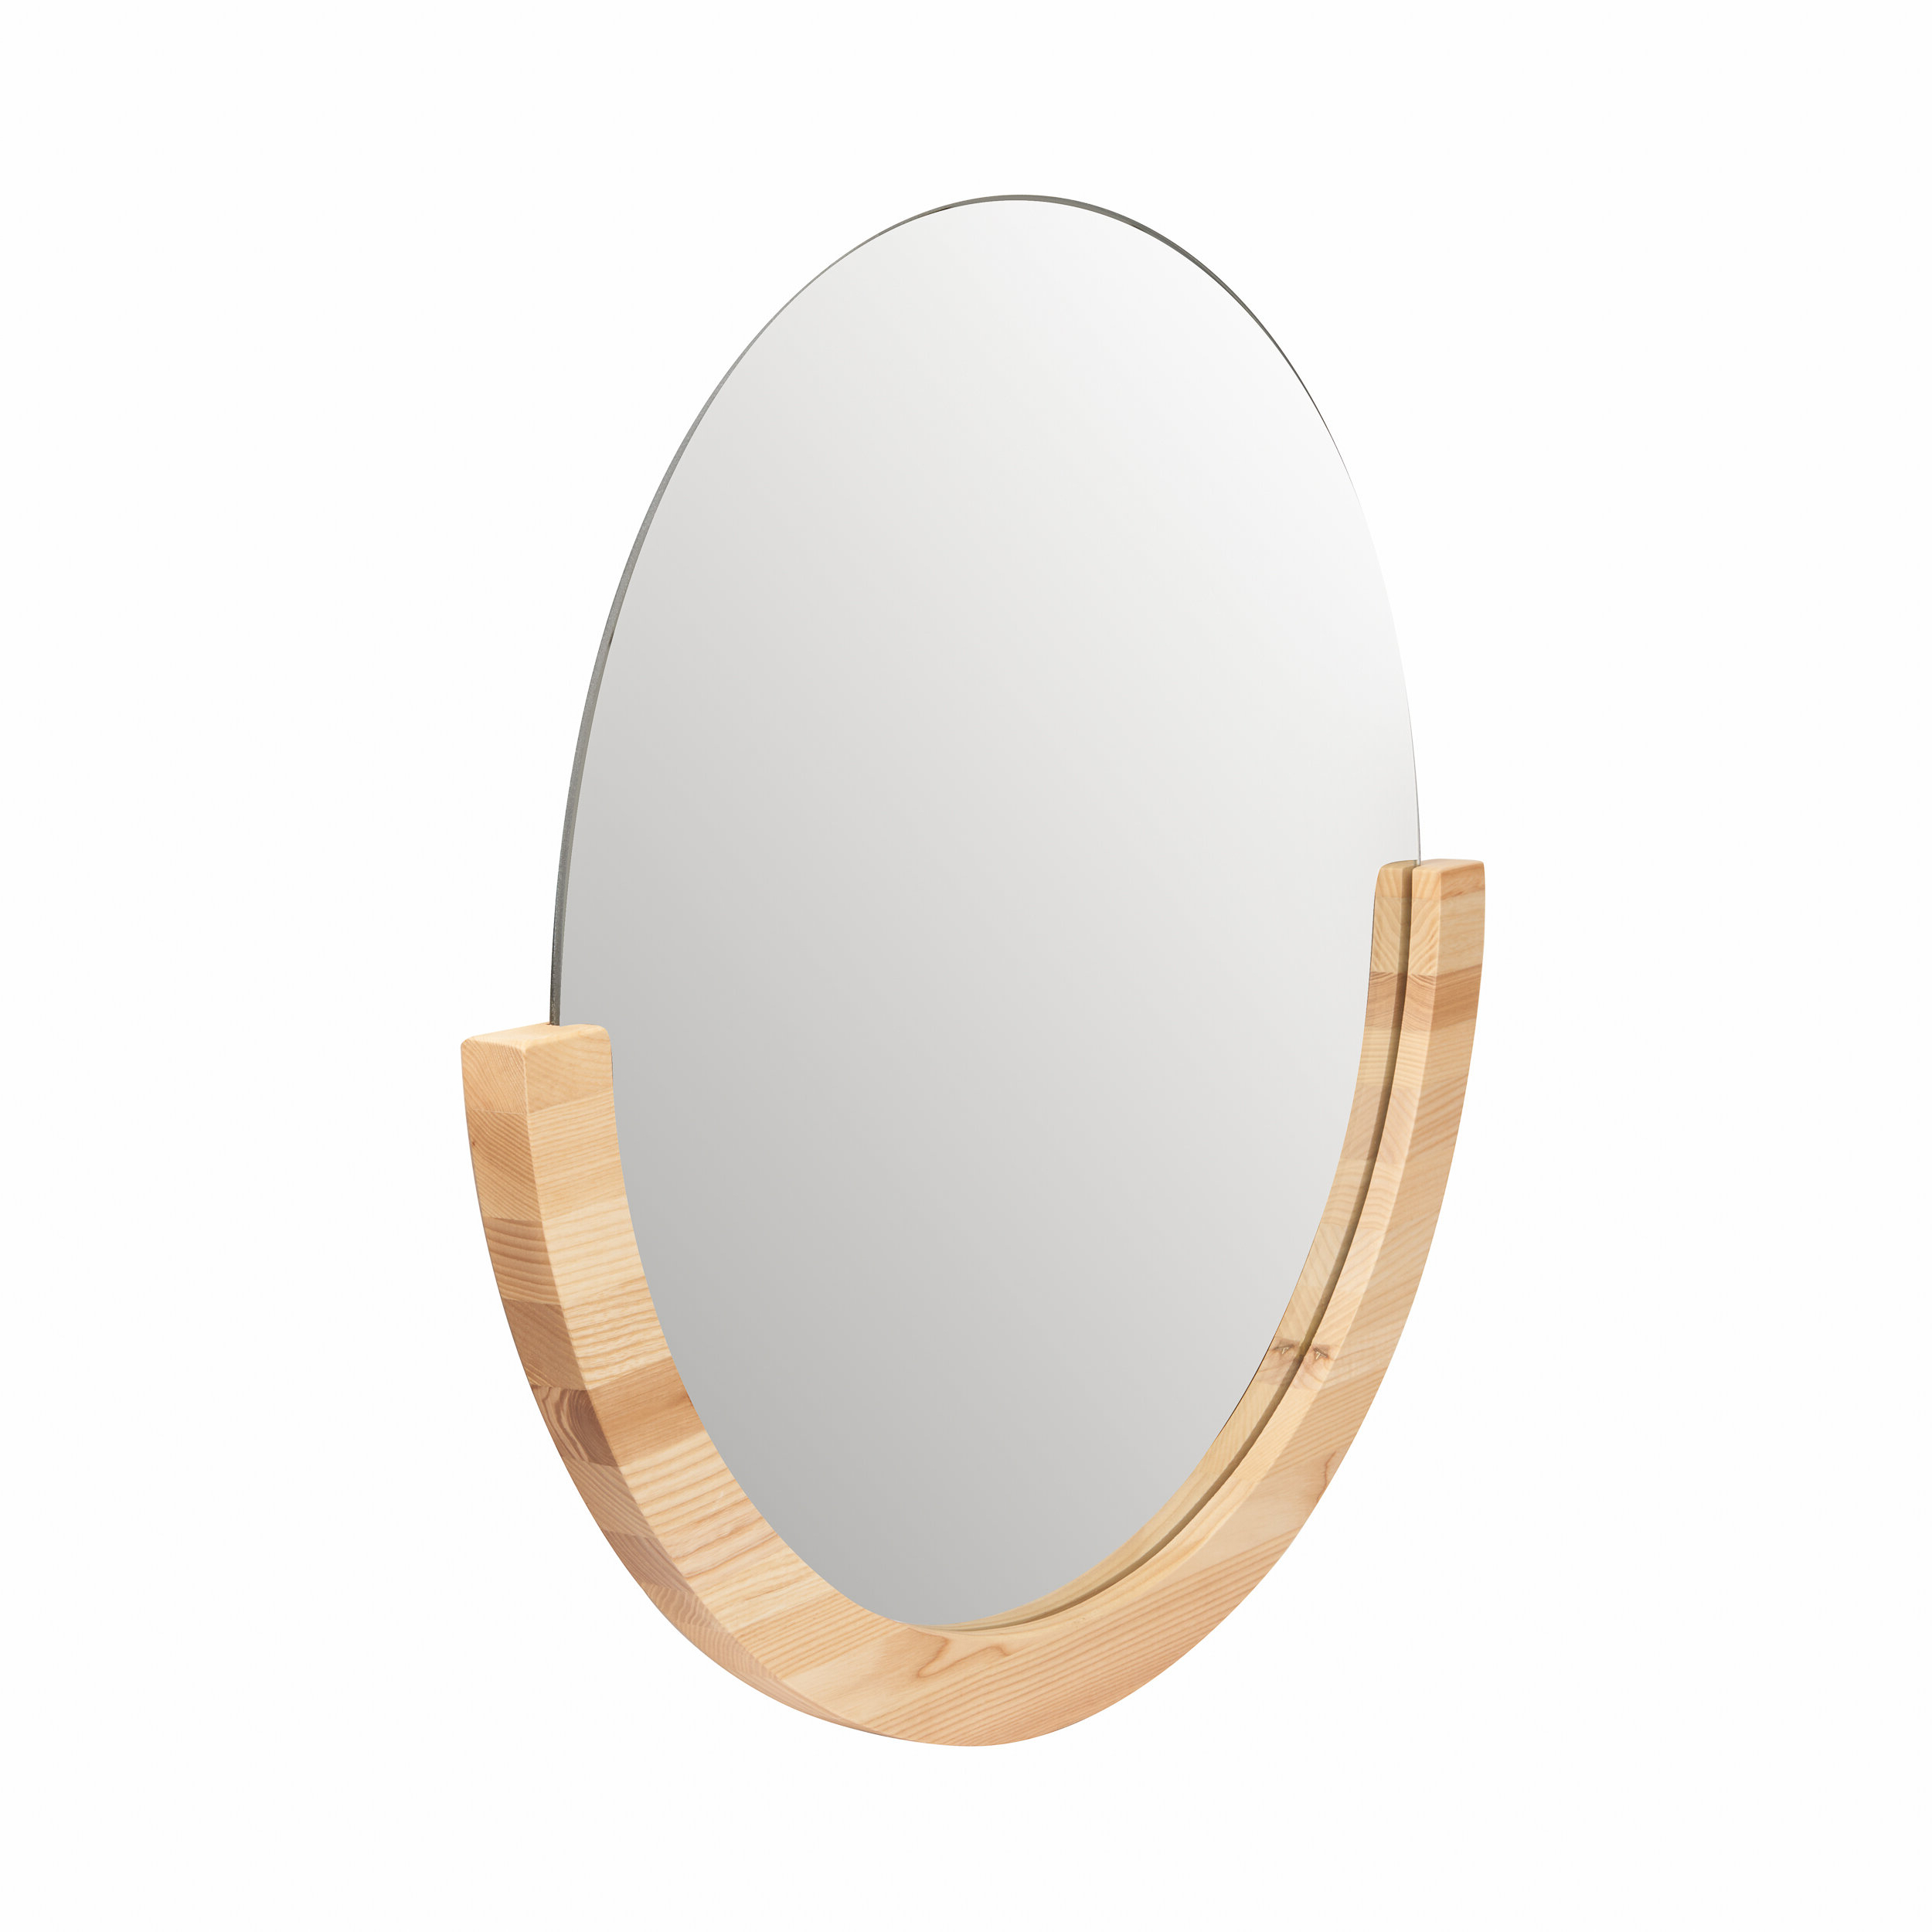 Bracelet Traditional Accent Mirrors Intended For Recent Mira Accent Mirror (View 13 of 20)